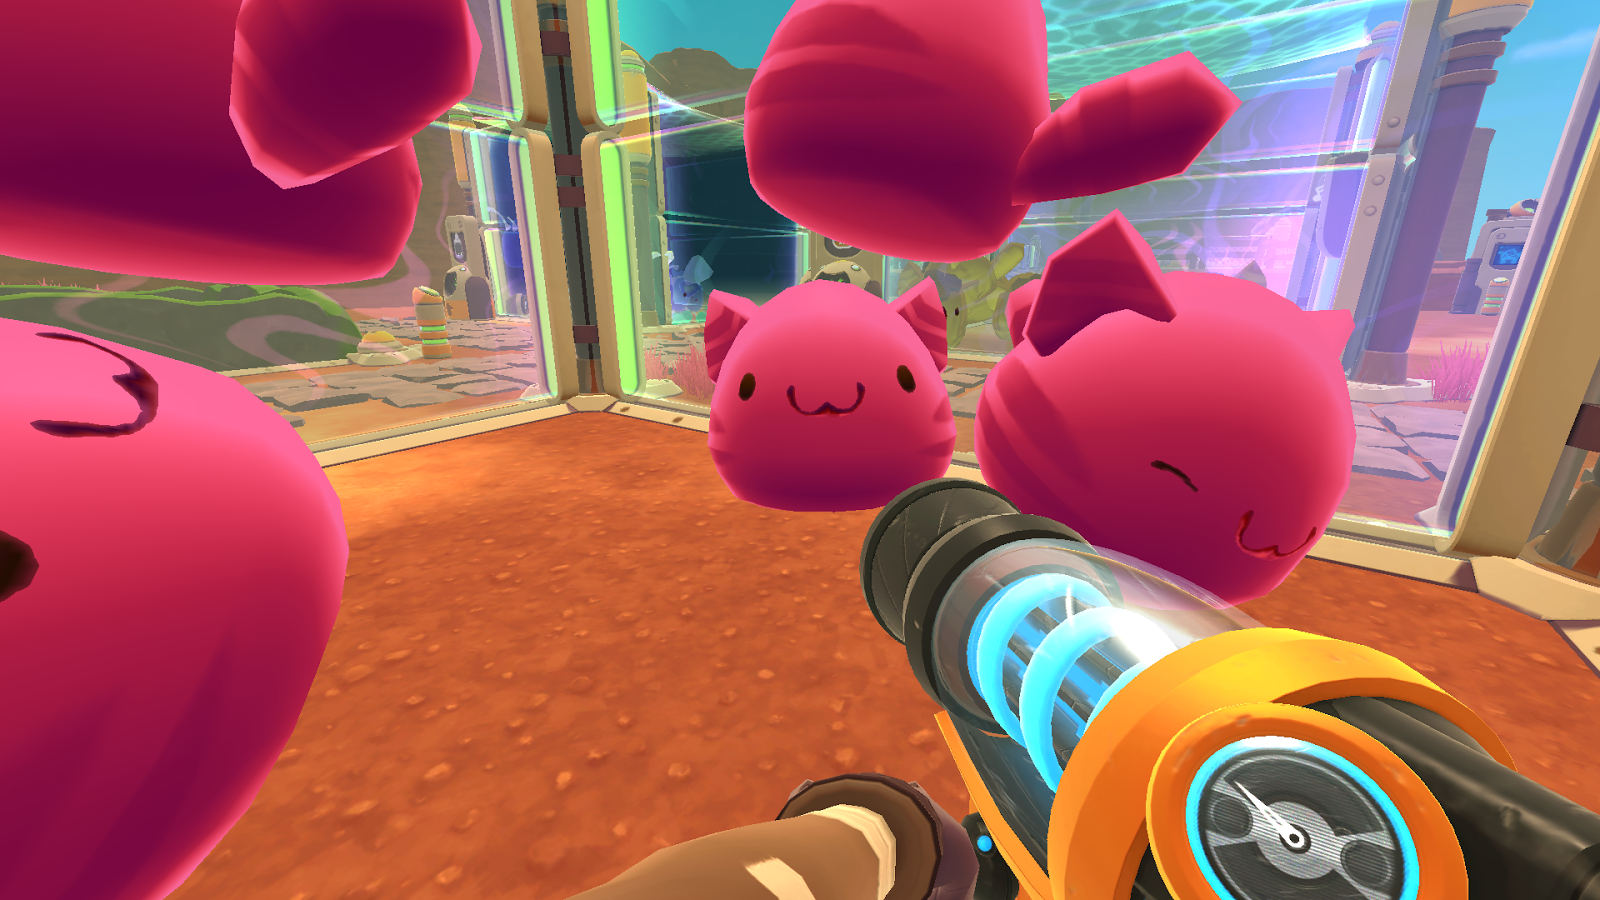 Pink tabby largo slimes